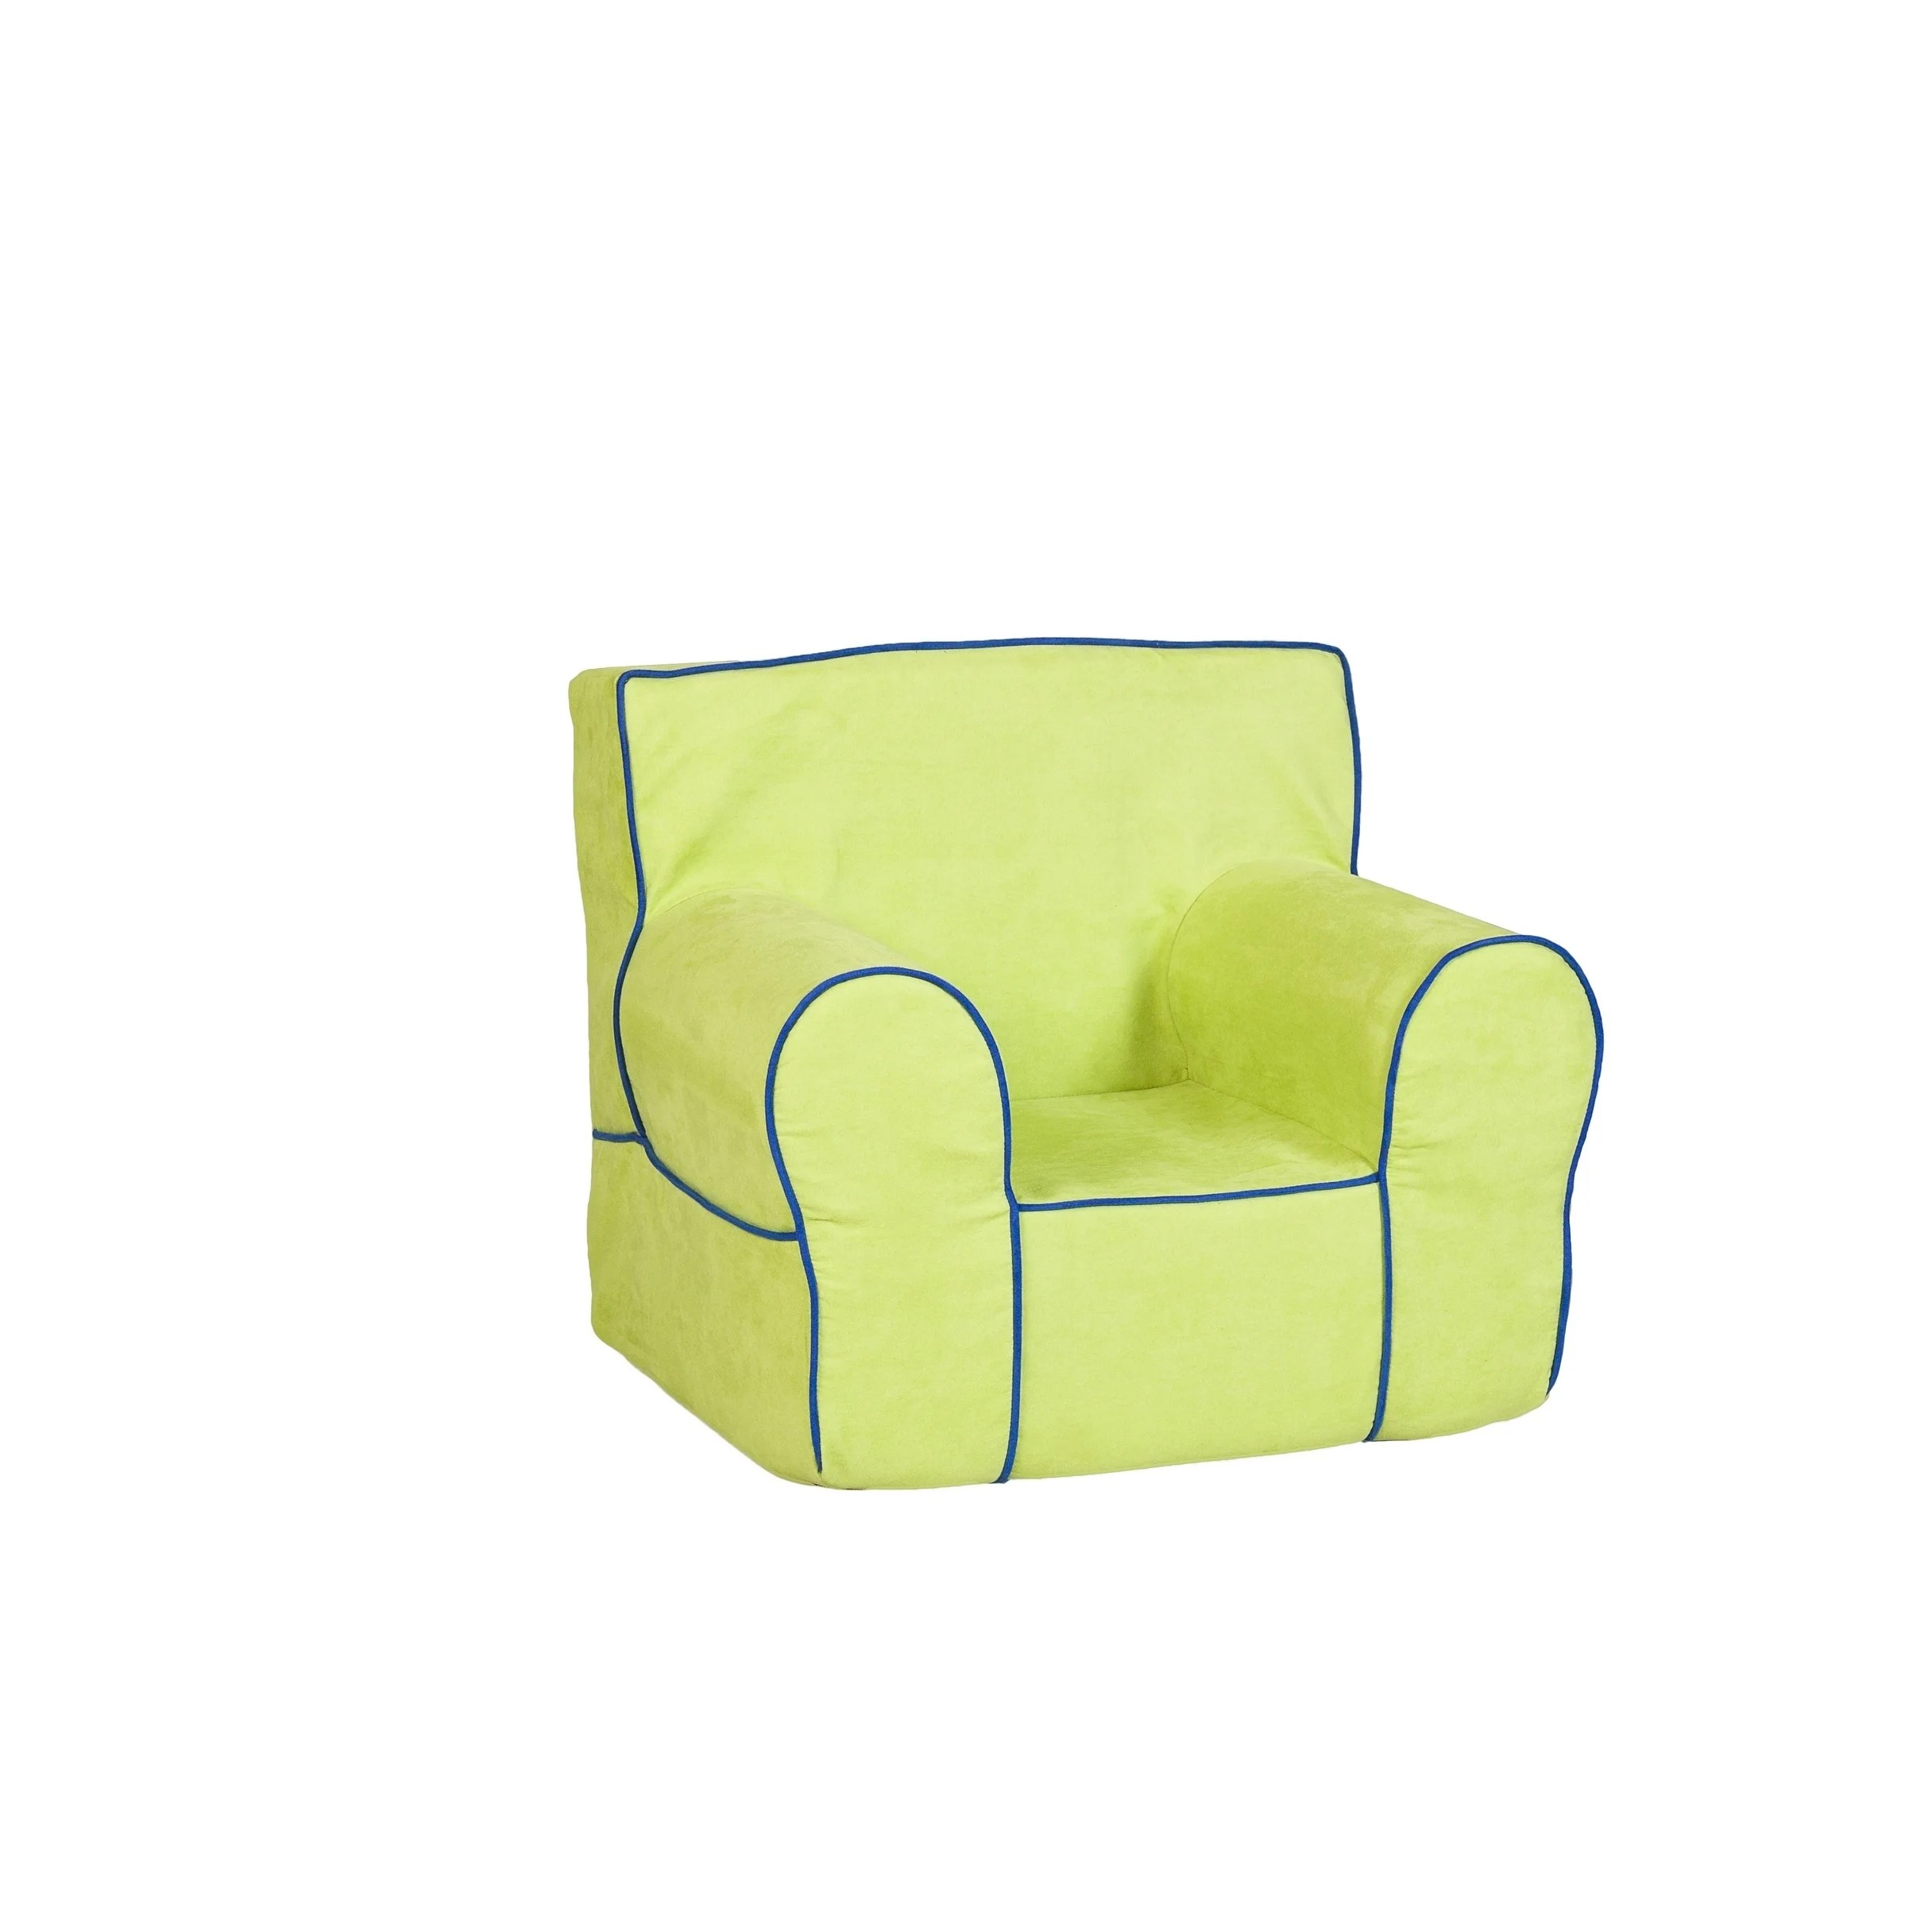 personalized kids chair thermarest easy leffler home all mine in montana sour apple details about